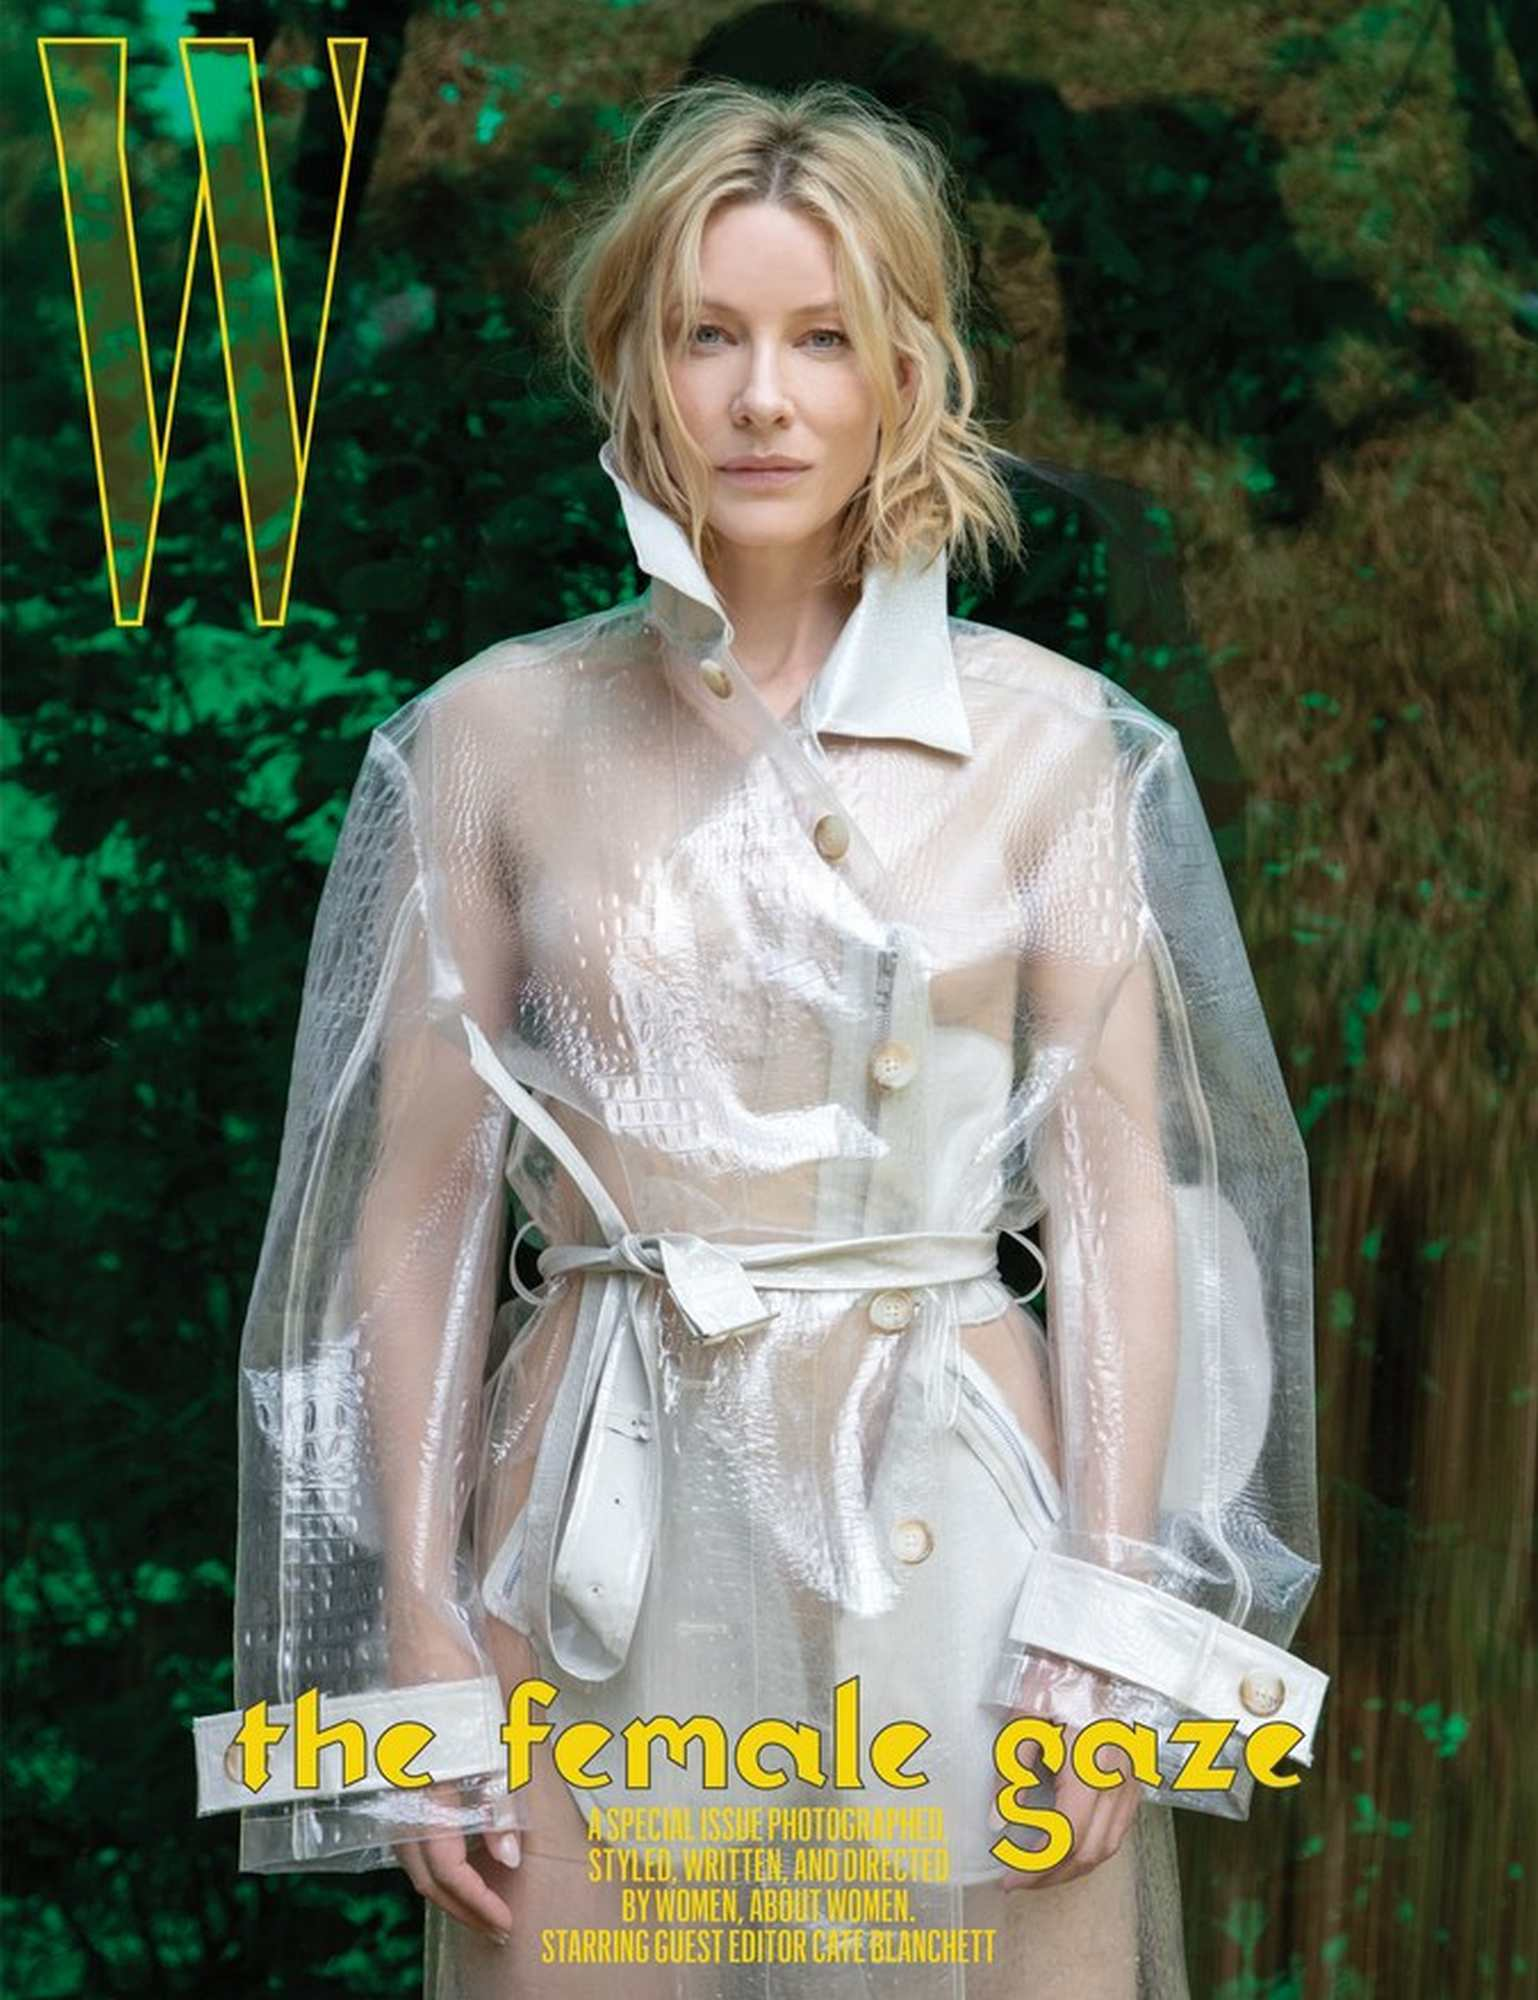 Cate-Blanchett-All-Female-Issue-of-W-Magazine-September50f5c6965971484.jpg